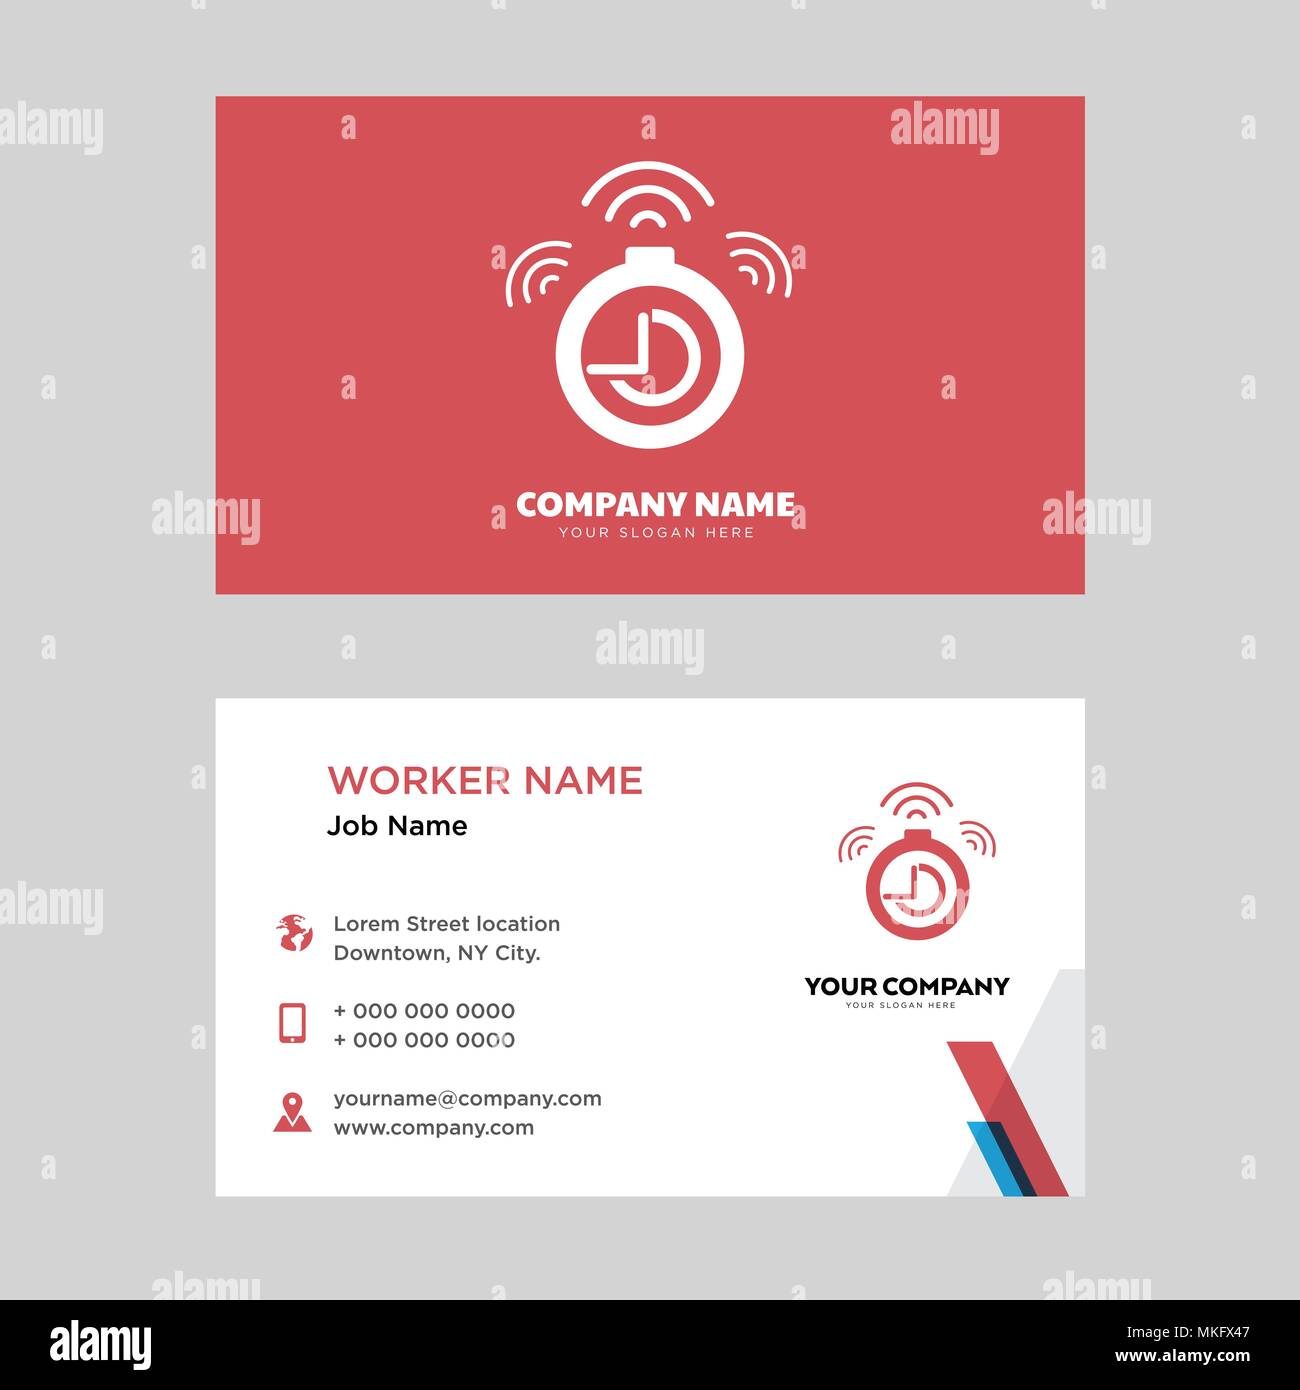 timer business card design template visiting for your company